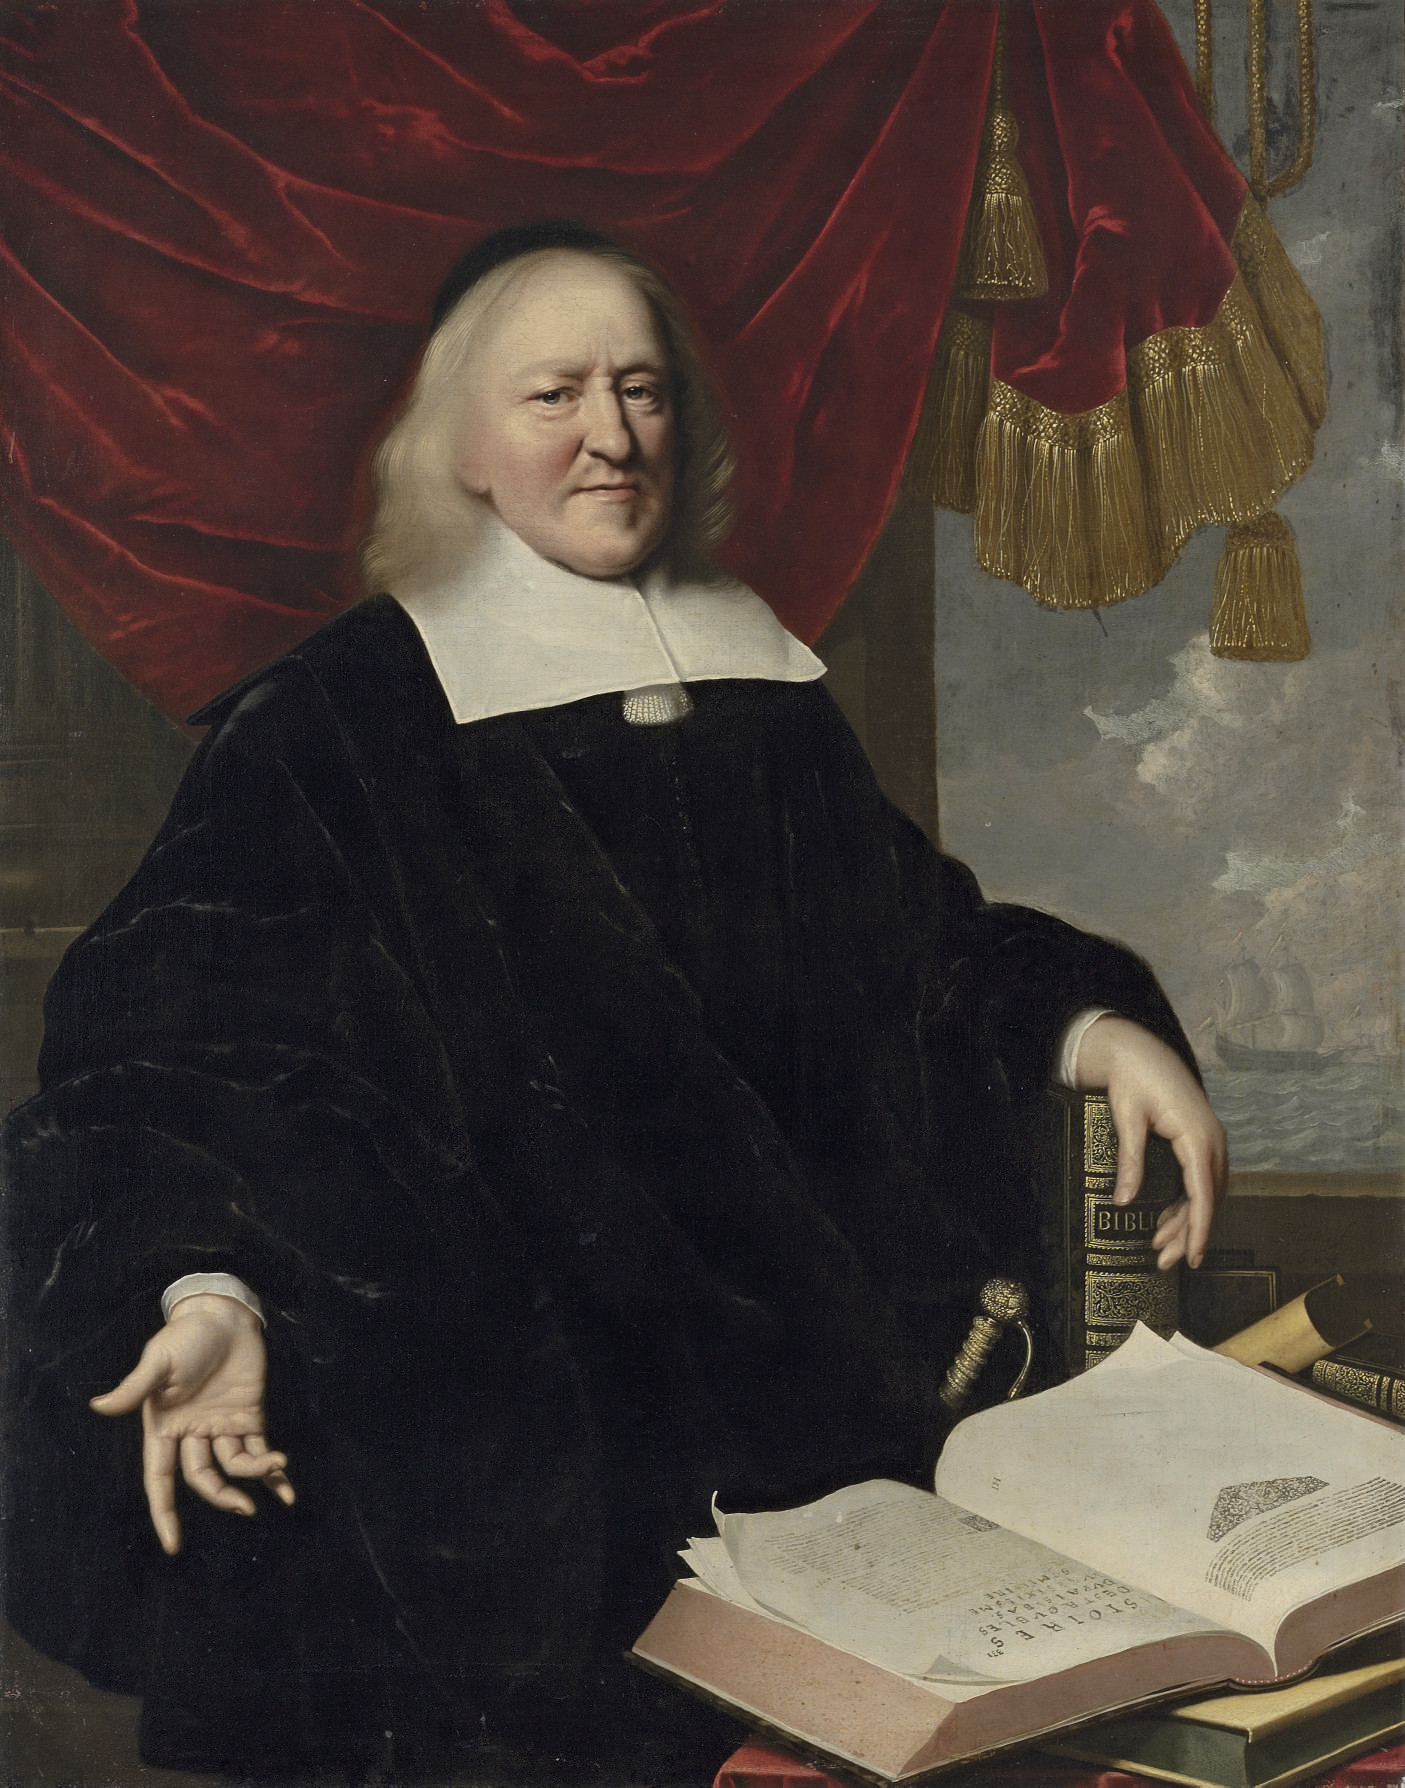 Portrait of Hendrik Thiebaut, three-quarter-length, in black, his left hand resting on a copy of the Bible, an open copy of Annales et Histoires des Troubles du Pais-Bas on the table in front of him, a draped curtain and coastal landscape beyond